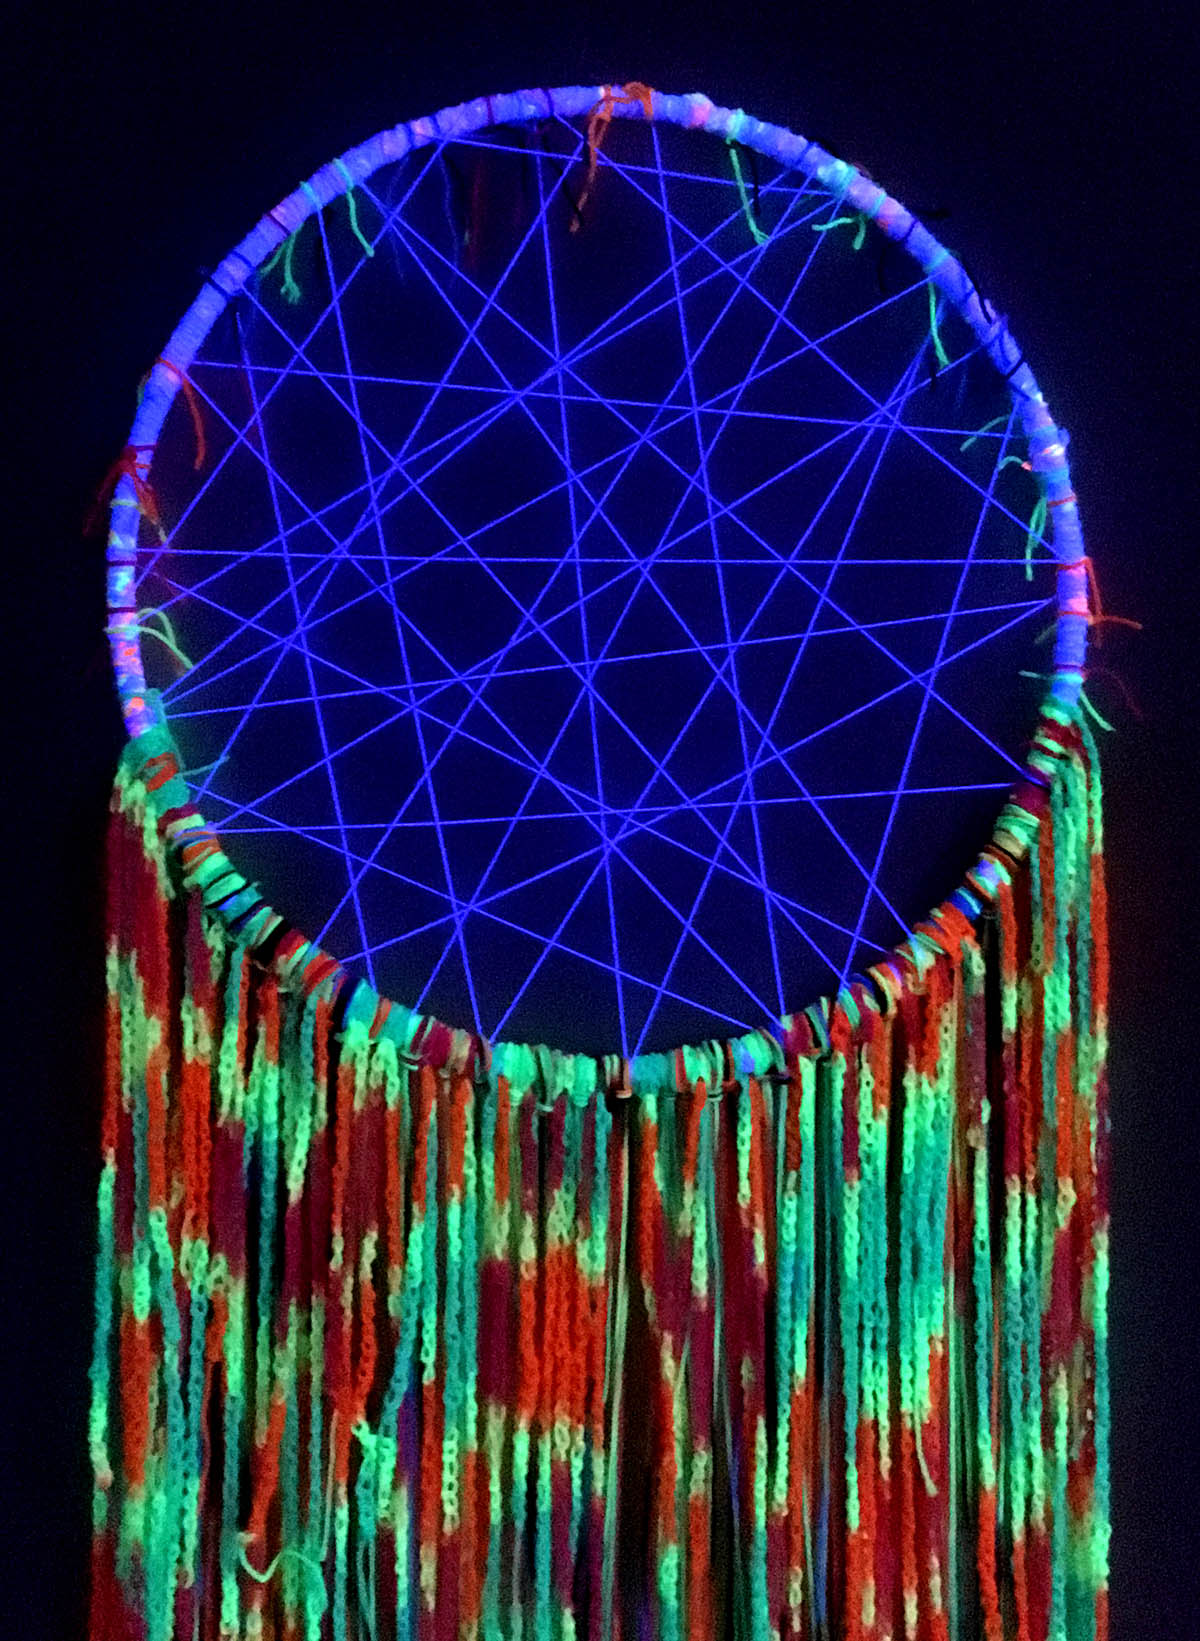 Wall-hanging dreamcatcher